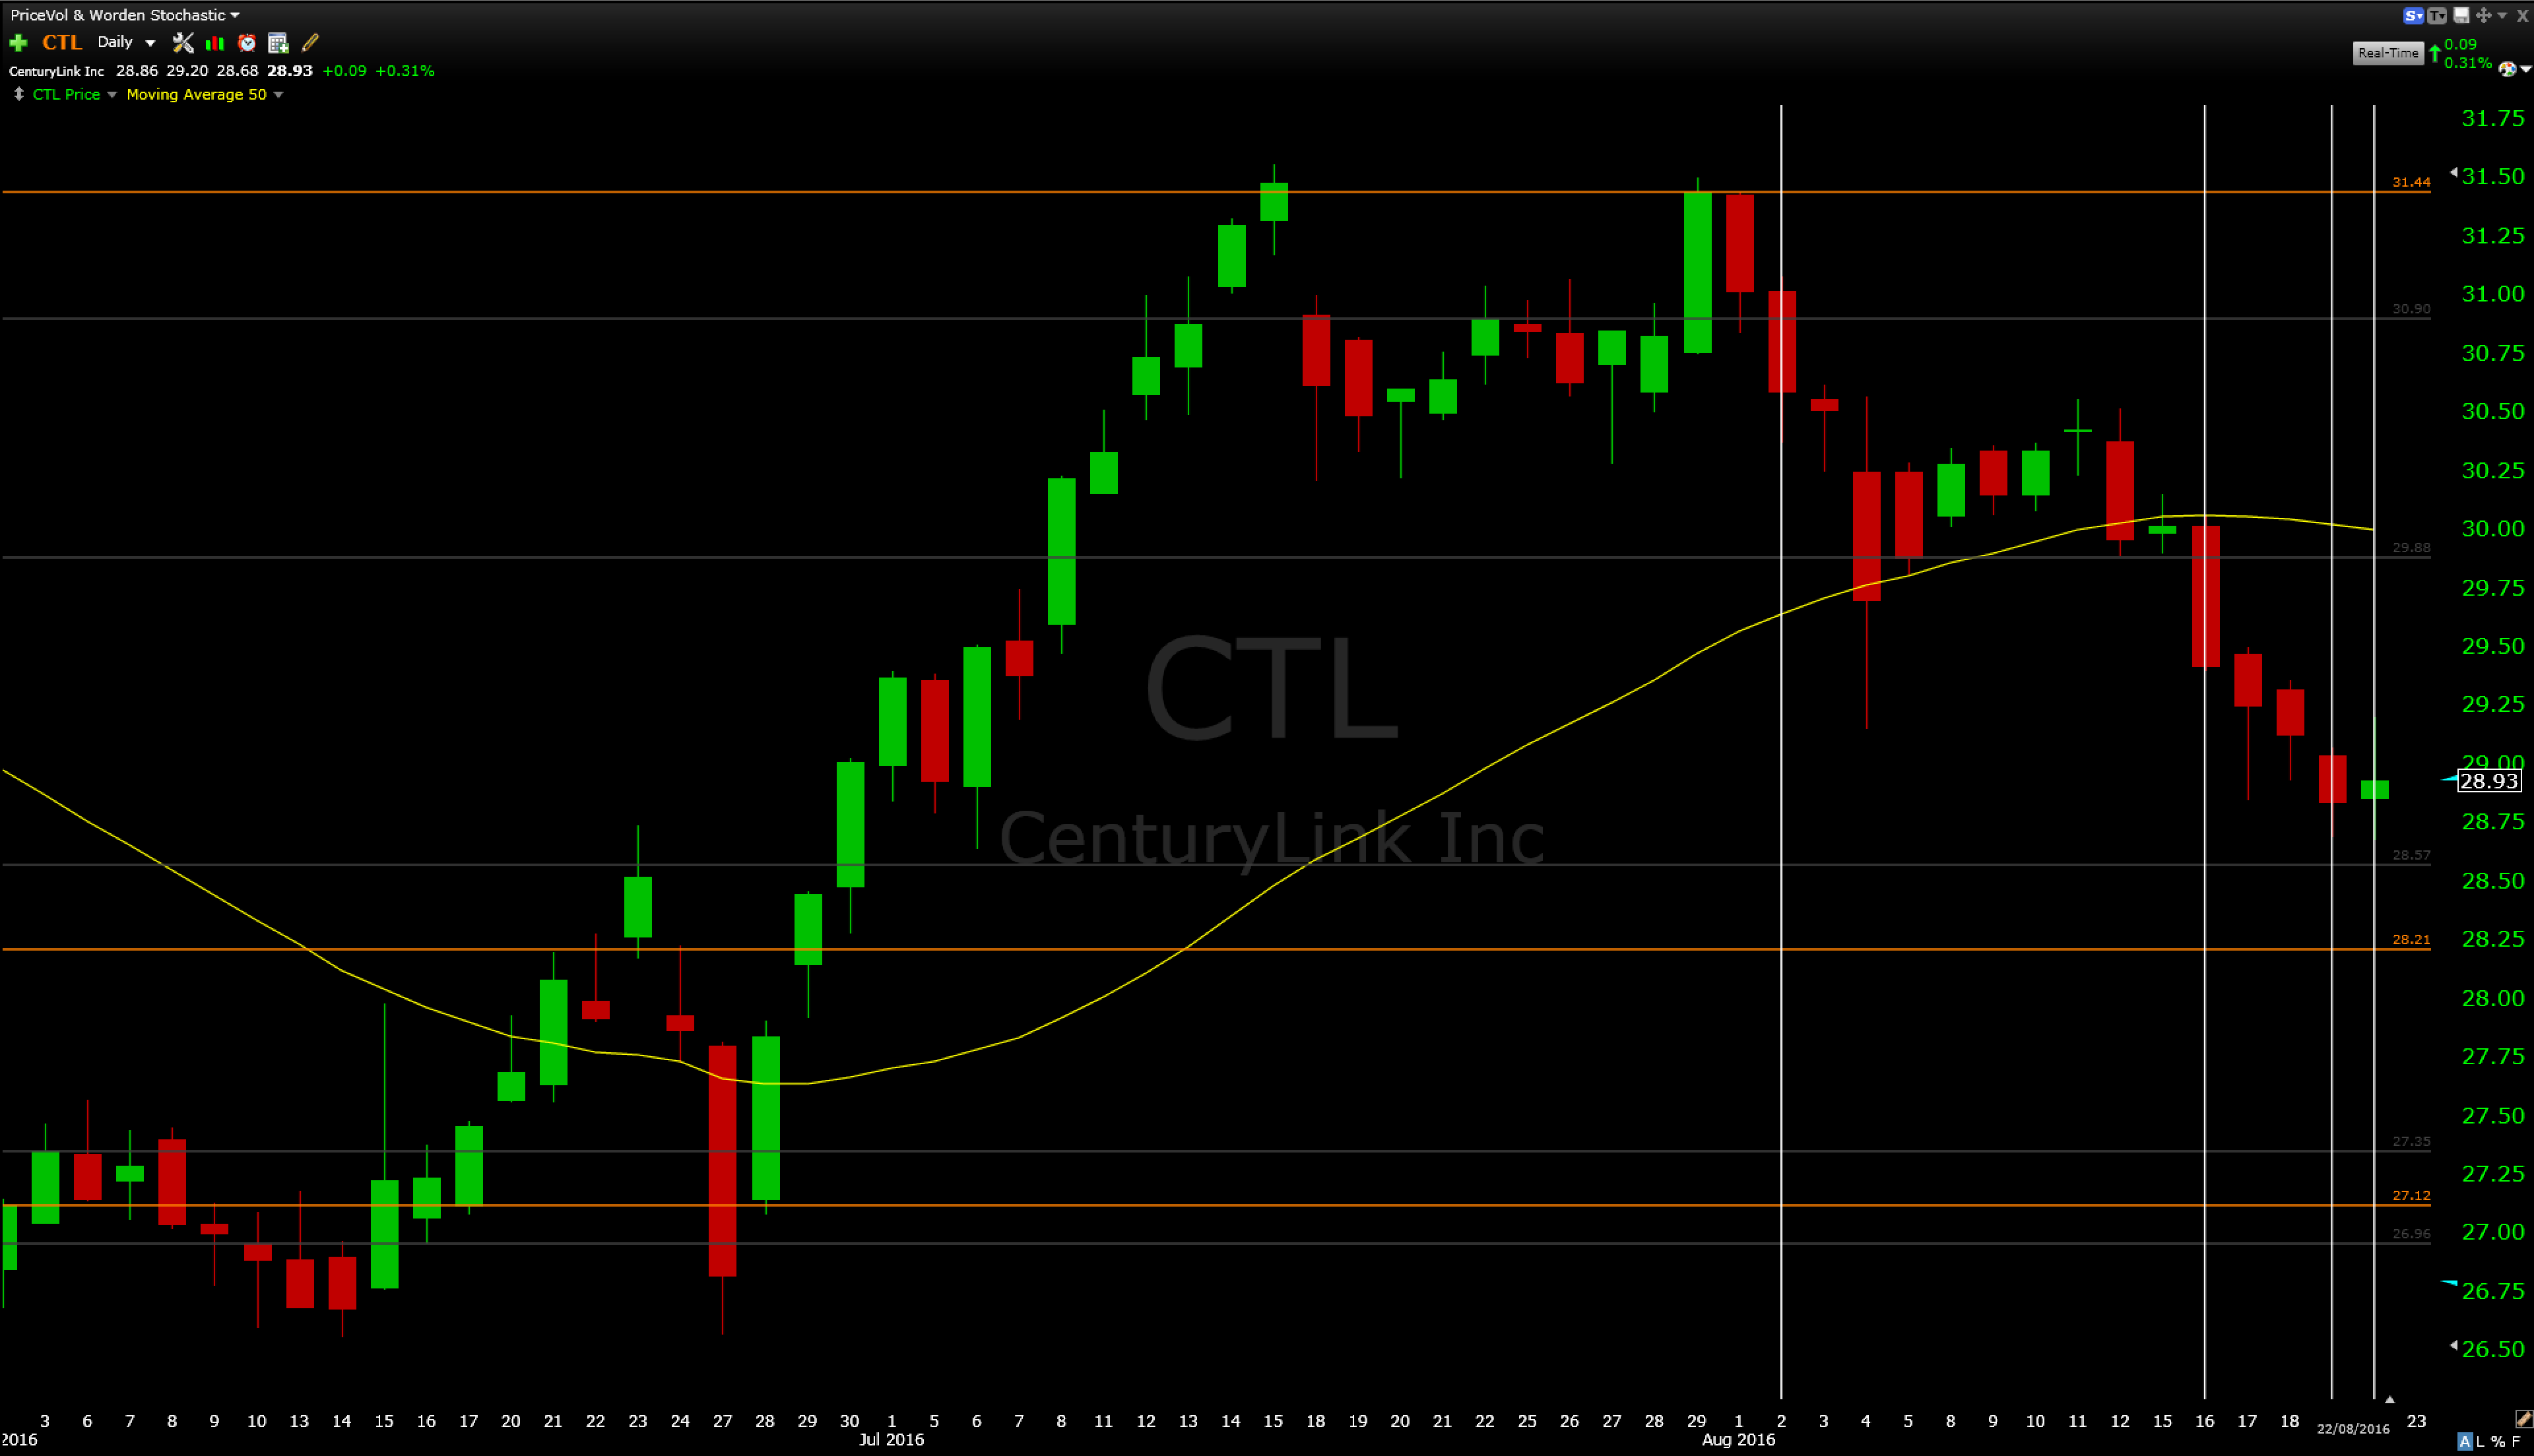 Ctl stock options